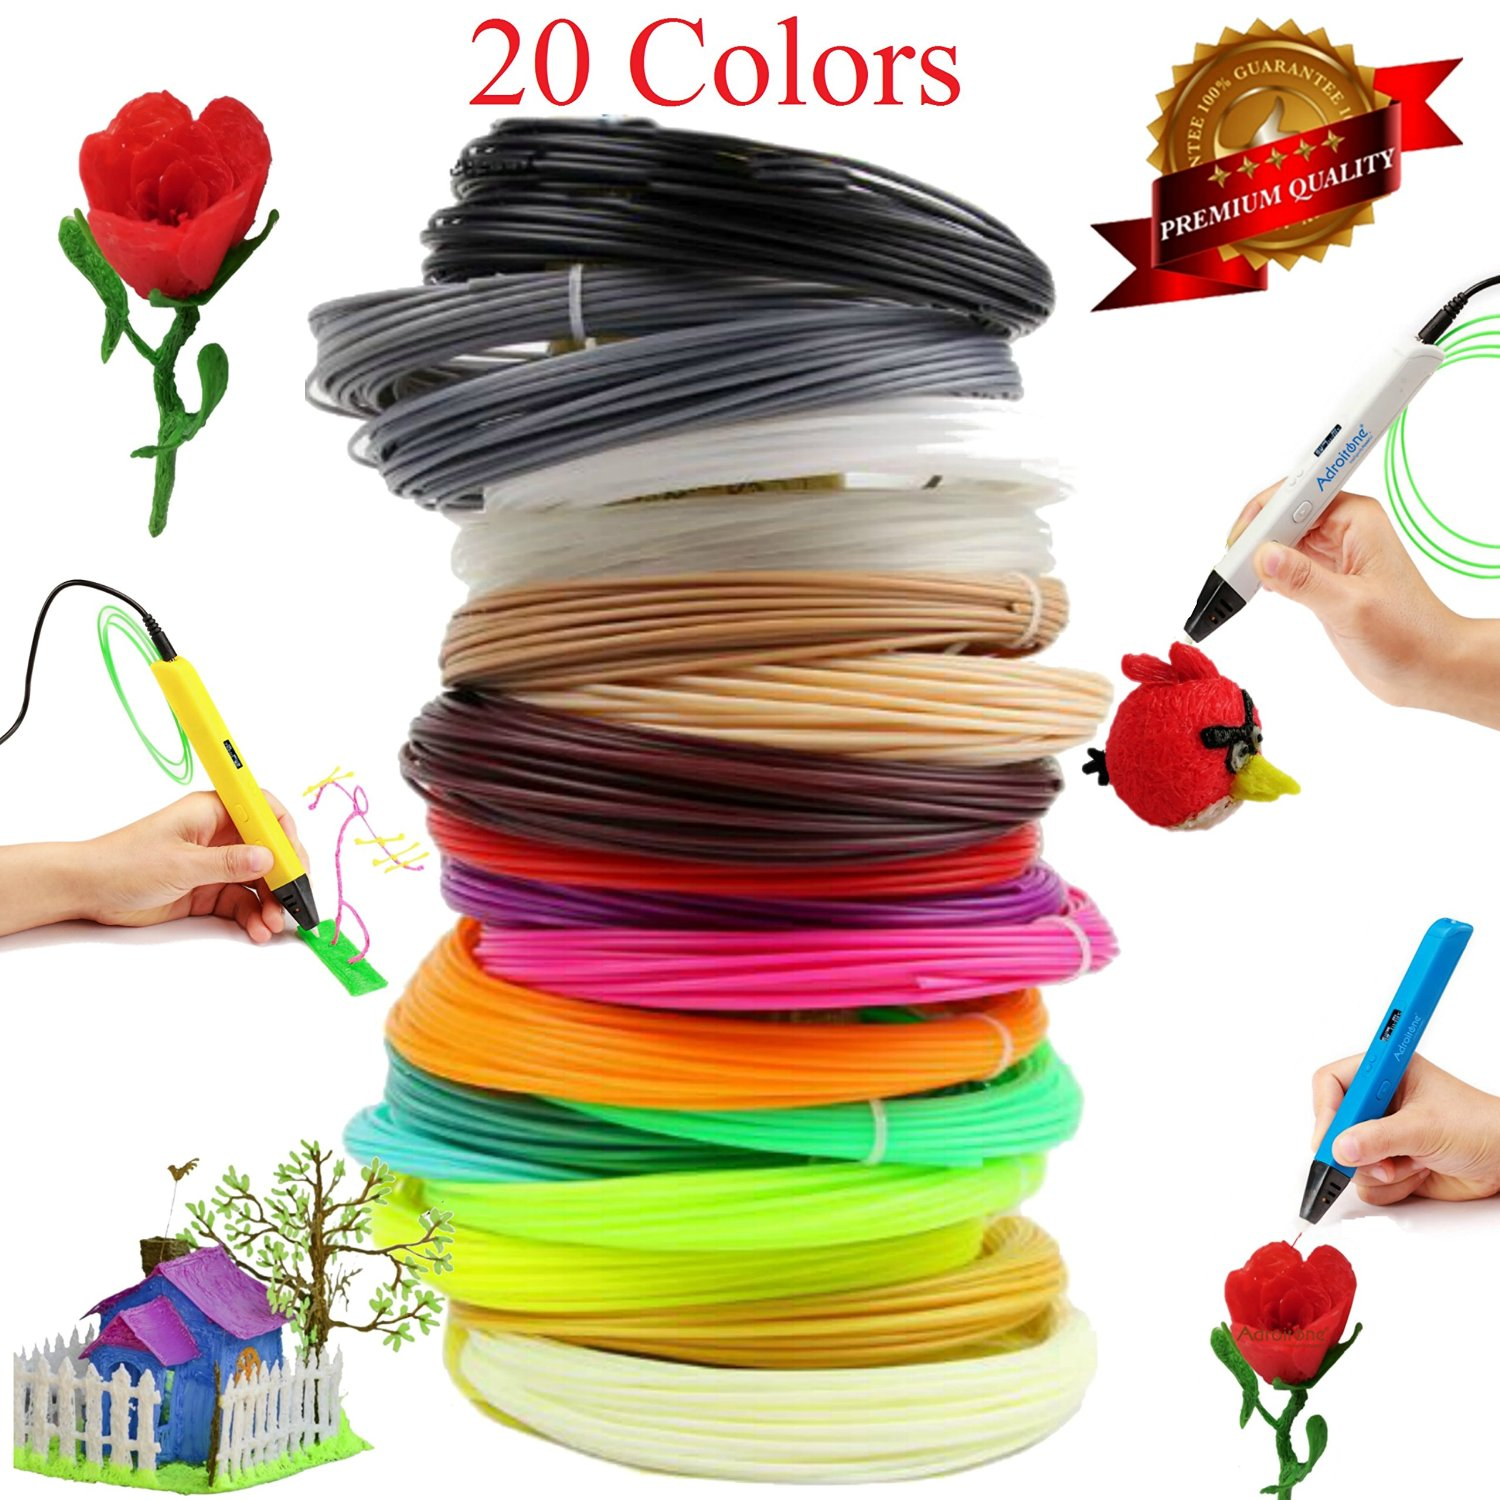 3 d Printing Pen Consumable Environmental Protection Non-toxic PLA HIPS1.75mm 3D Magic Pen Filament Refills - 20 Colors crazy sales car accessories daylights led tube drl fog lamp for toyota vios yaris 2008 2012